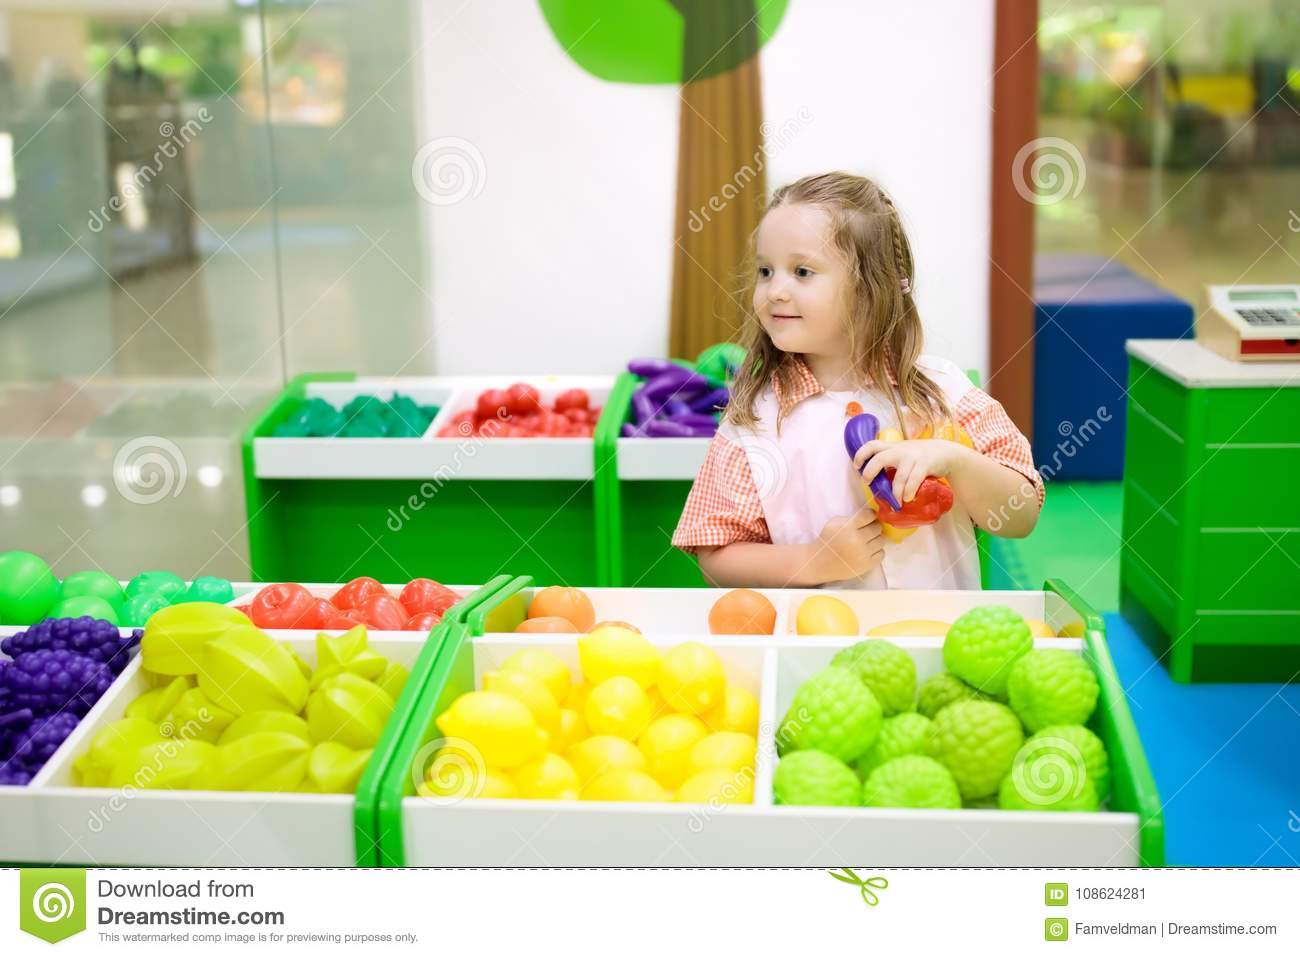 Kids Play At Toy Supermarket Or Grocery Store Stock Image